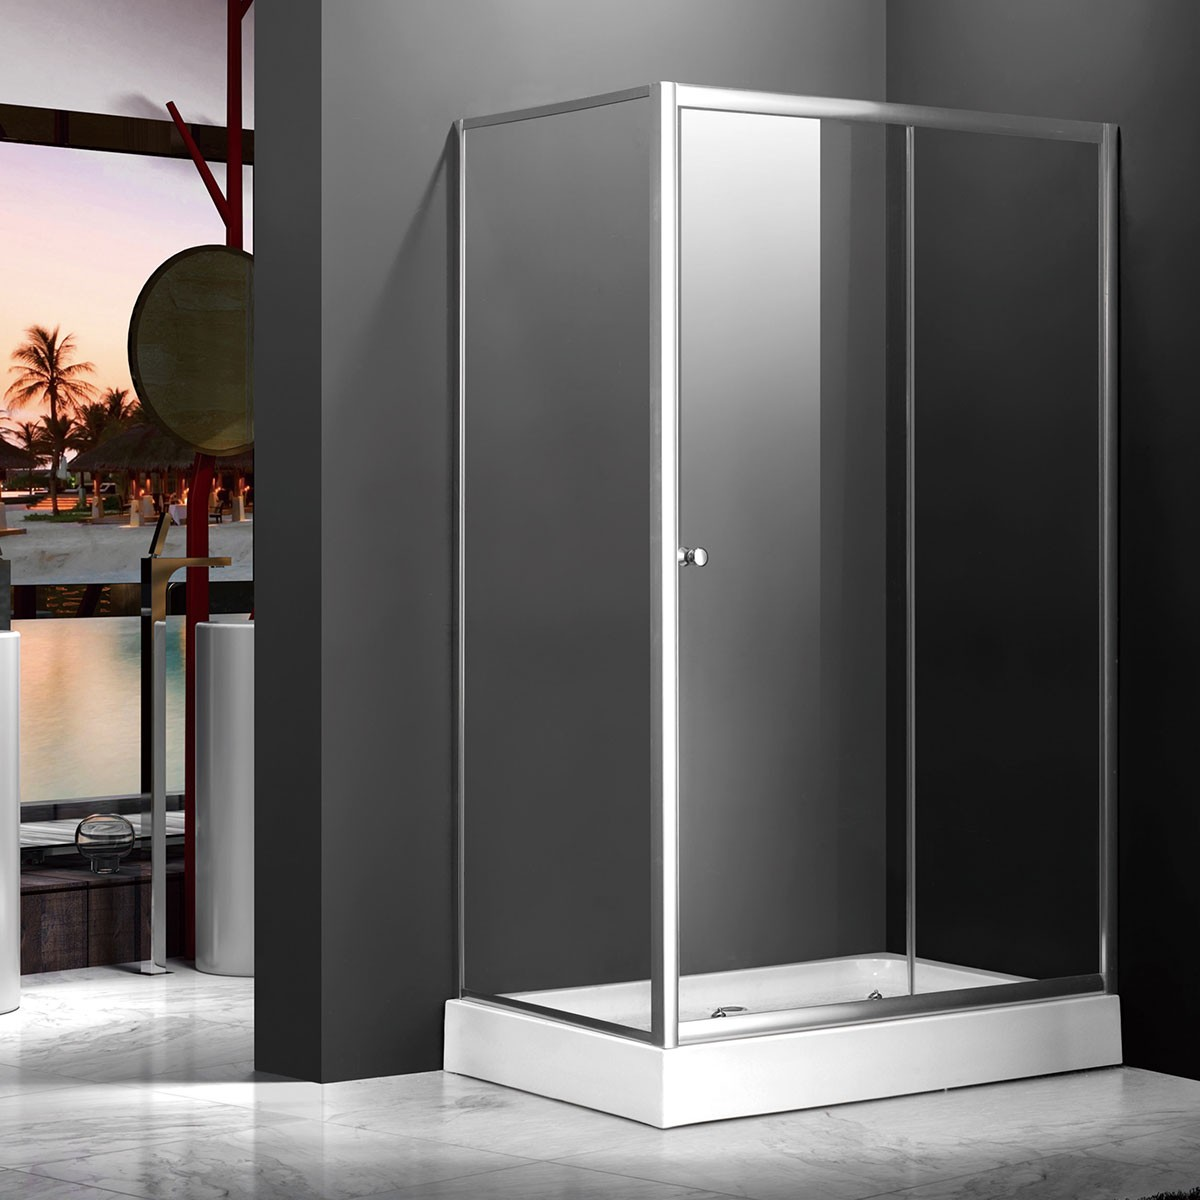 48 x 36 In. (120 x 90 cm) Clear Tempered Glass Shower Stall (DK-MS-WE-04)